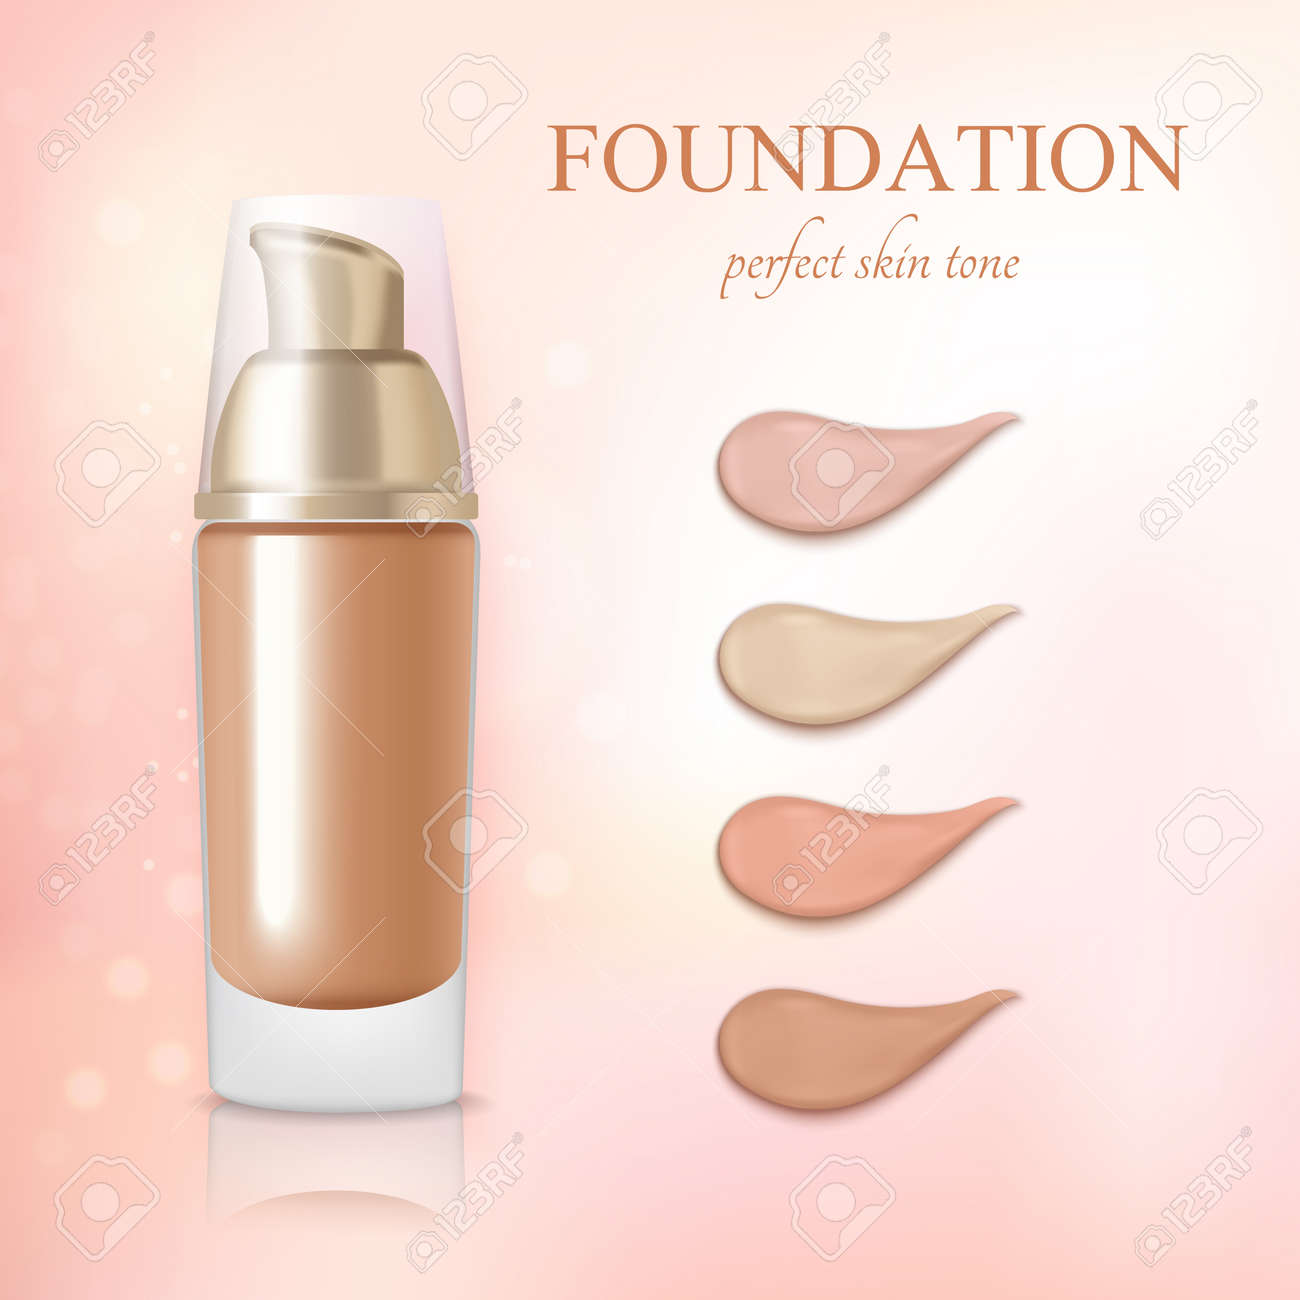 Cosmetic foundation concealer cream color samples realistic commercial advertisement background poster vector illustration - 165885881